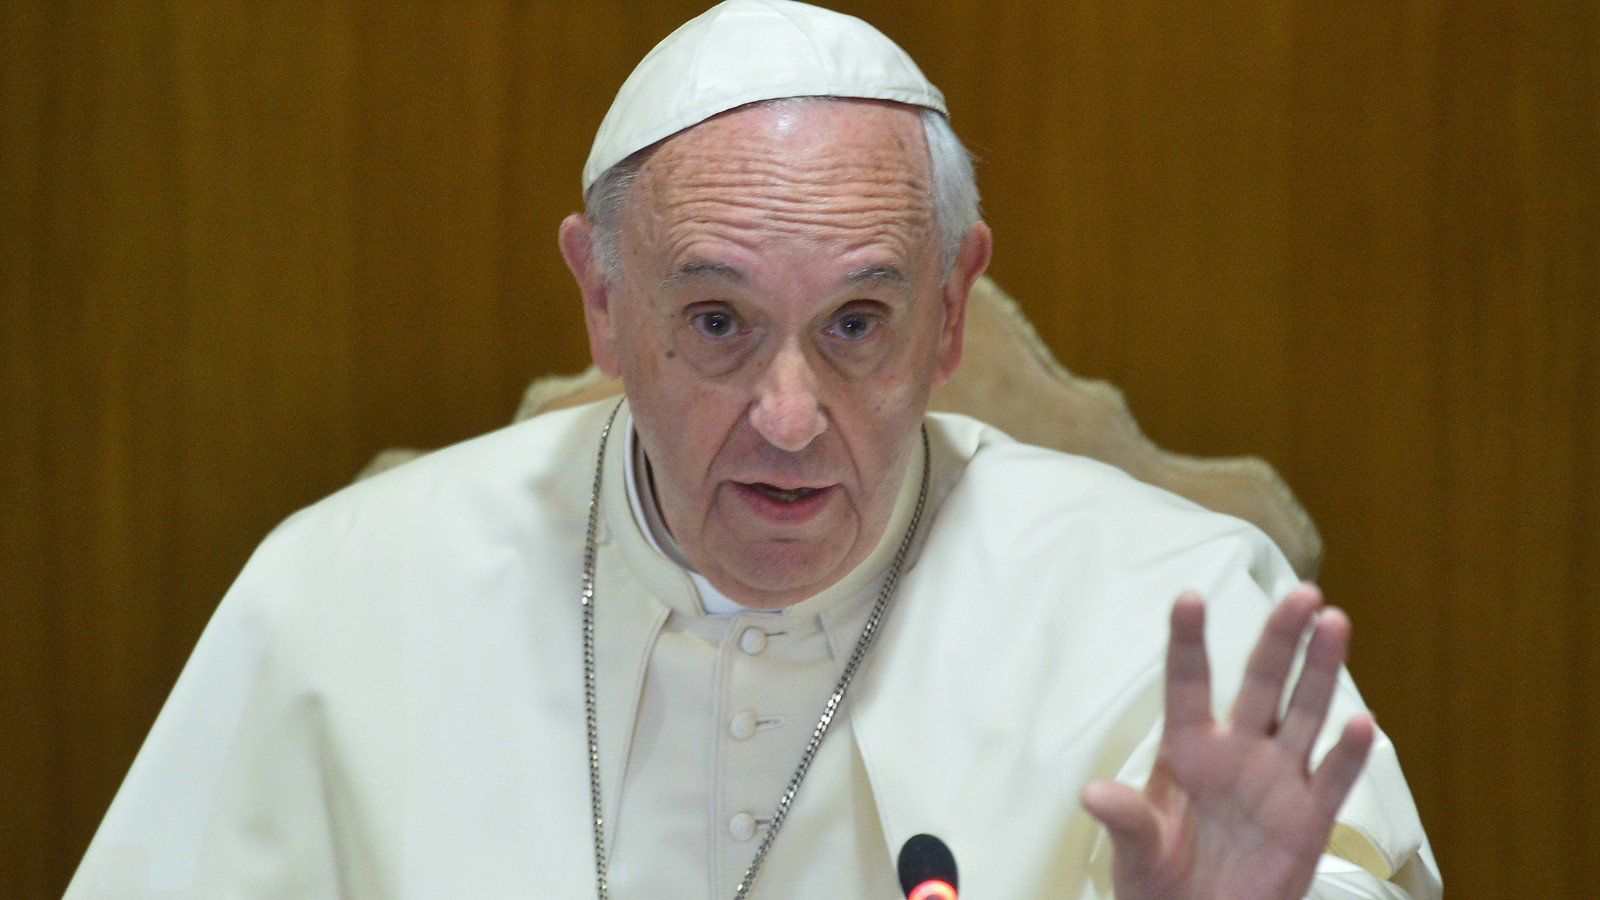 Don't Allow Gay People Into Seminaries, Pope Warns